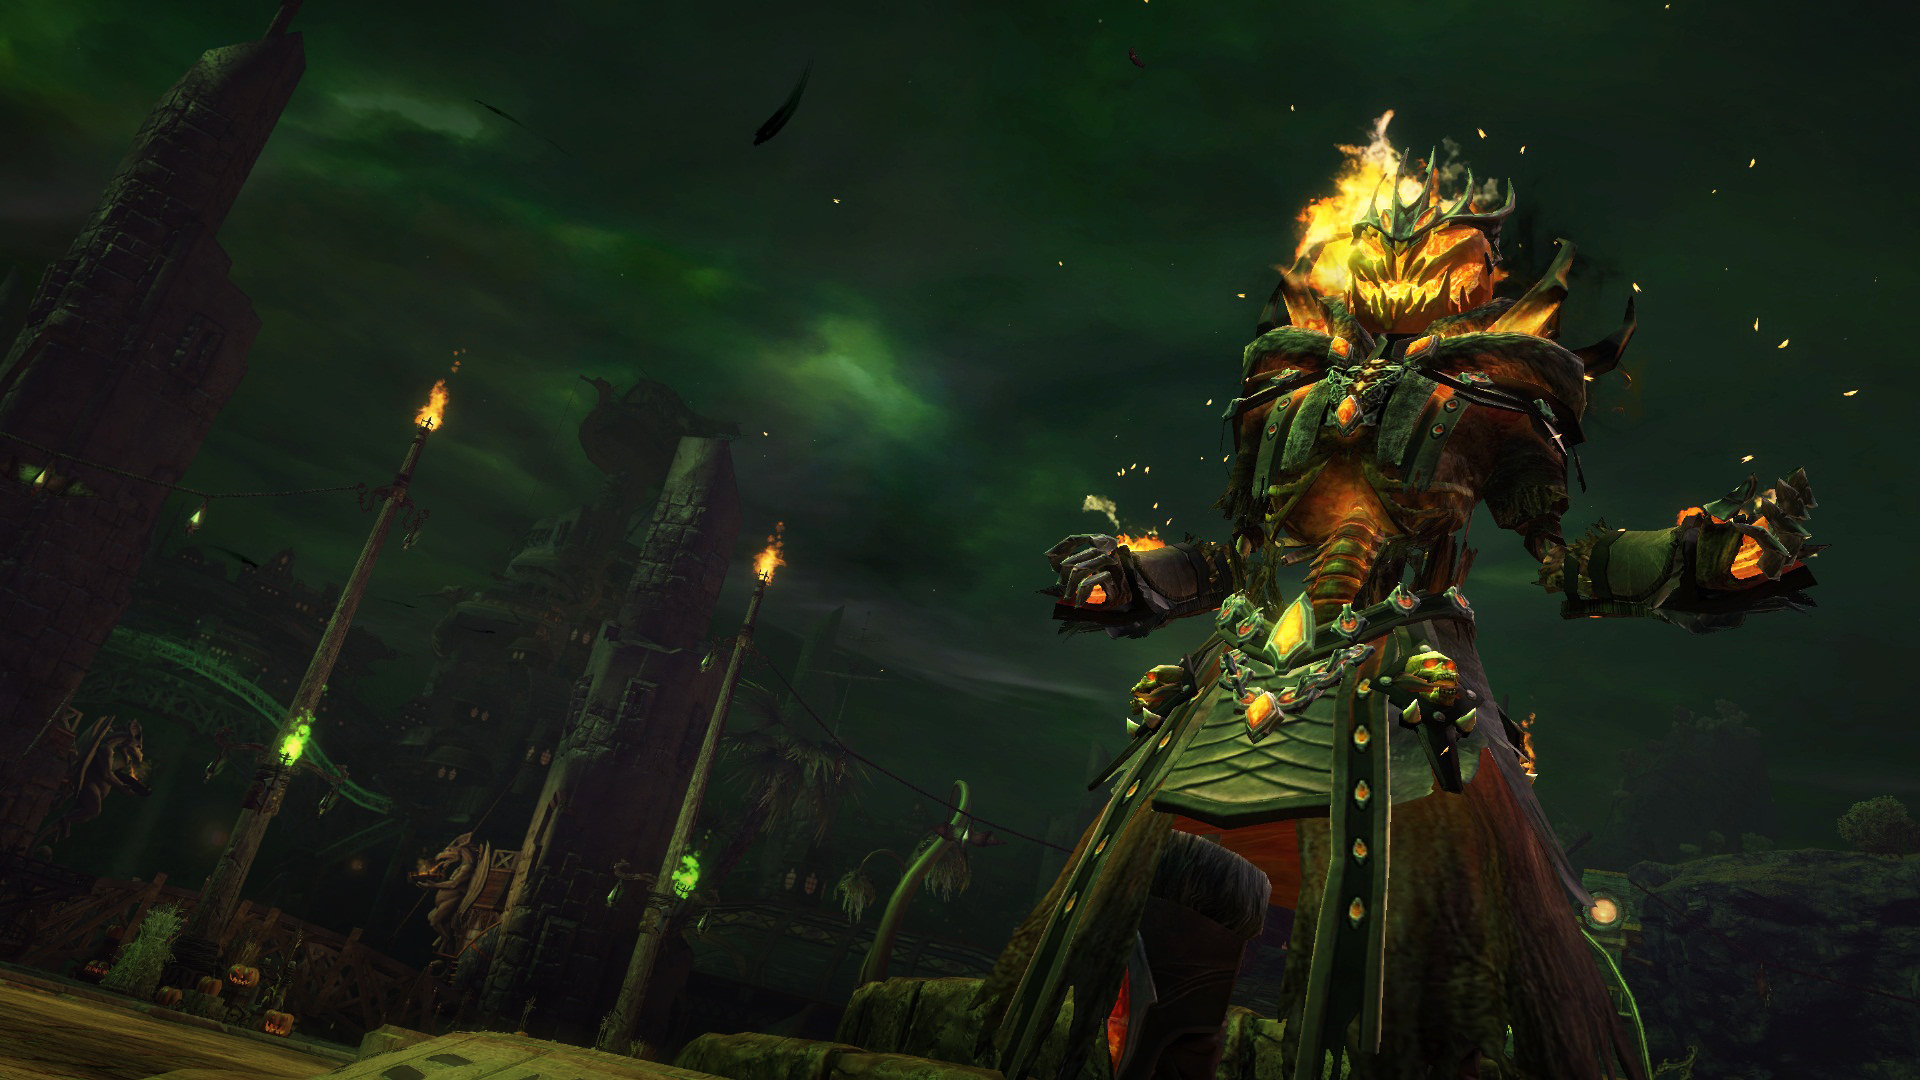 Horror Animated Wallpapers For Pc Shadow Of The Mad King October 2012 Guildwars2 Com